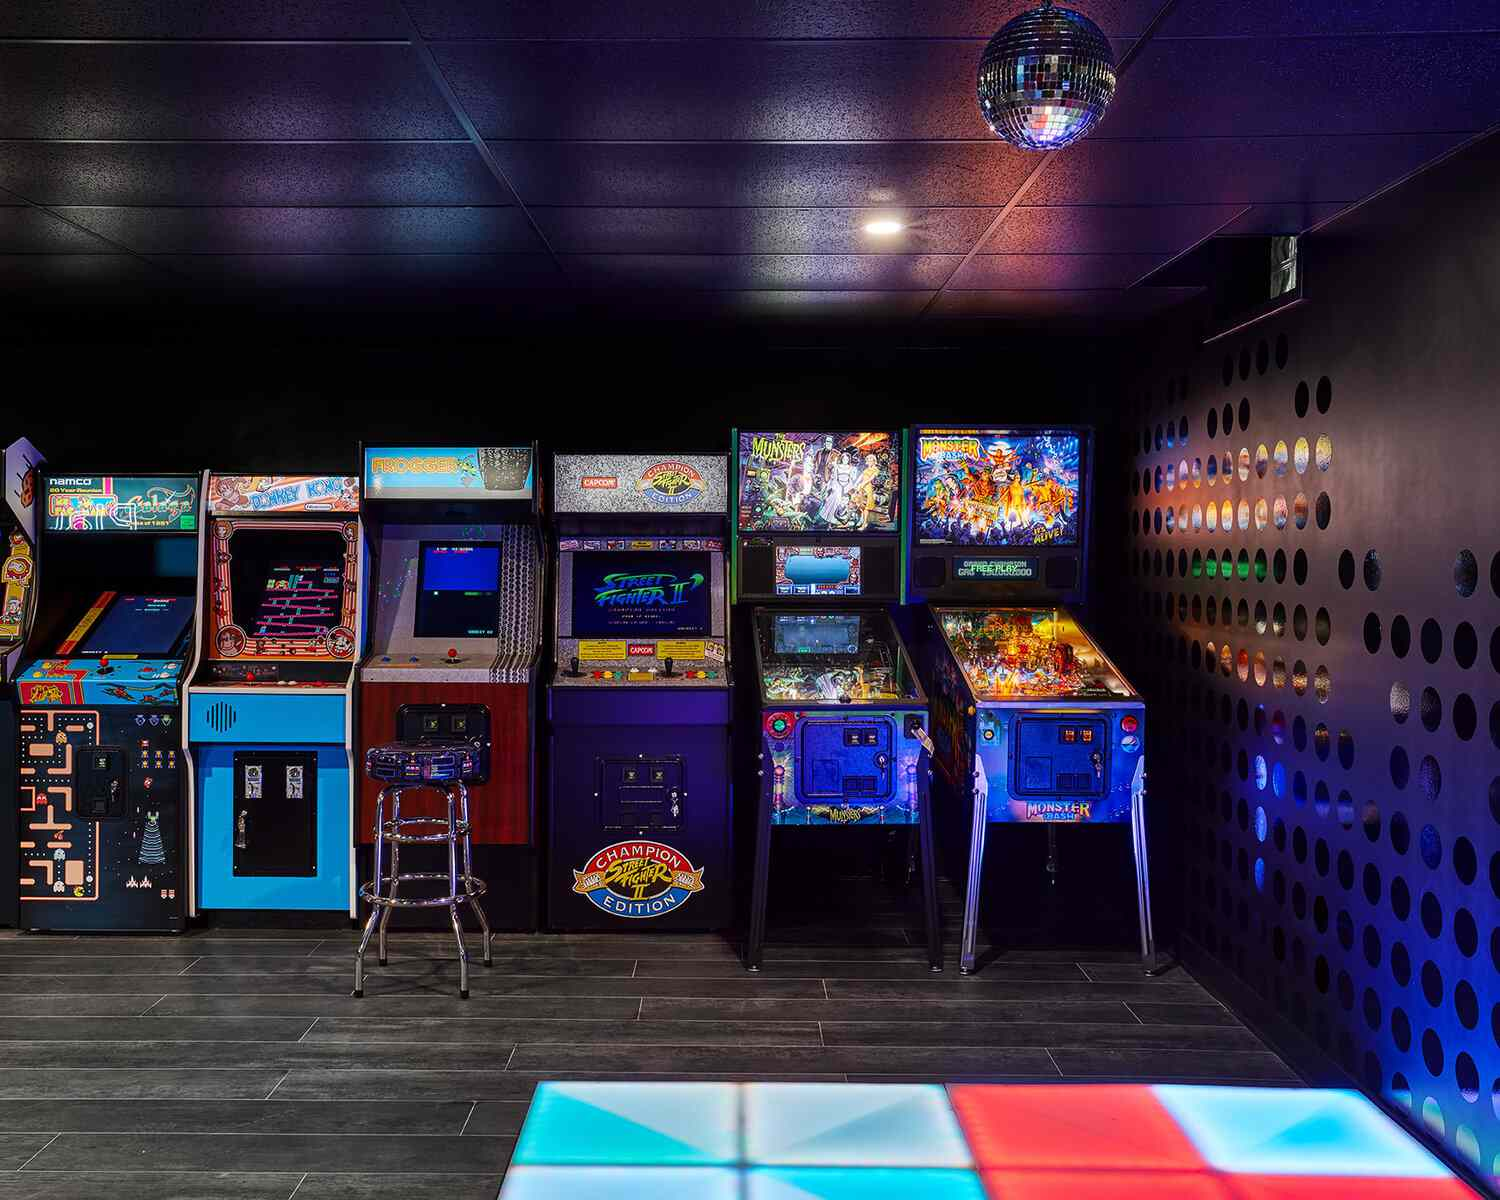 A basement filled with vibrant arcade games, which reflect off shiny accents on the wall and a disco ball on the ceiling